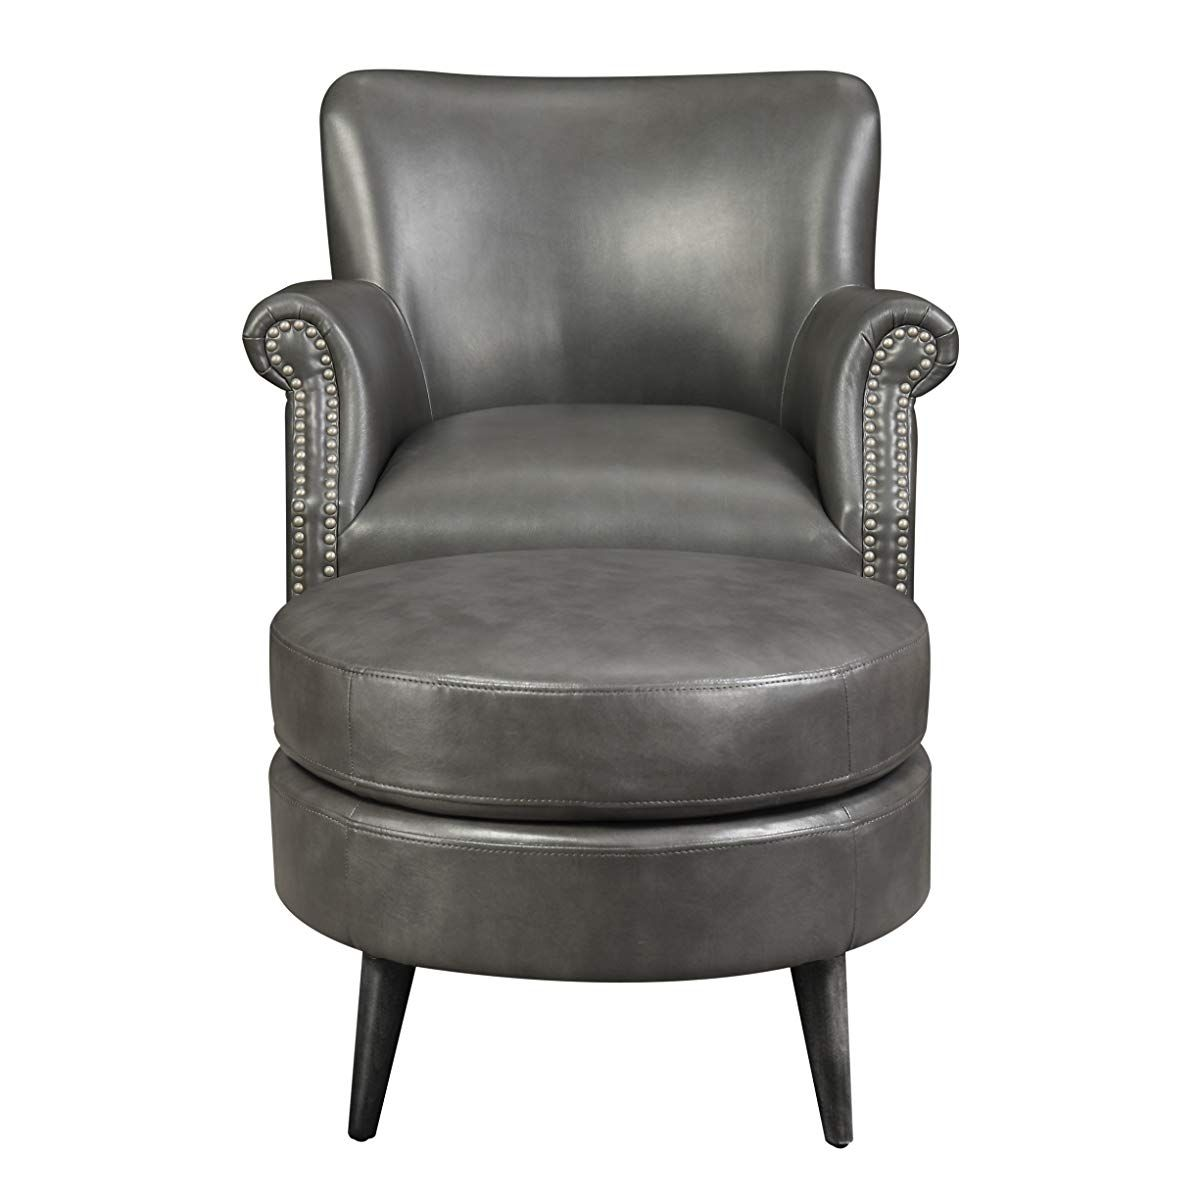 Gray Accent Chair And Ottoman With Faux Leather Upholstery And Nailhead Trim Chair And Ottoman Grey Leather Chair Grey Accent Chair